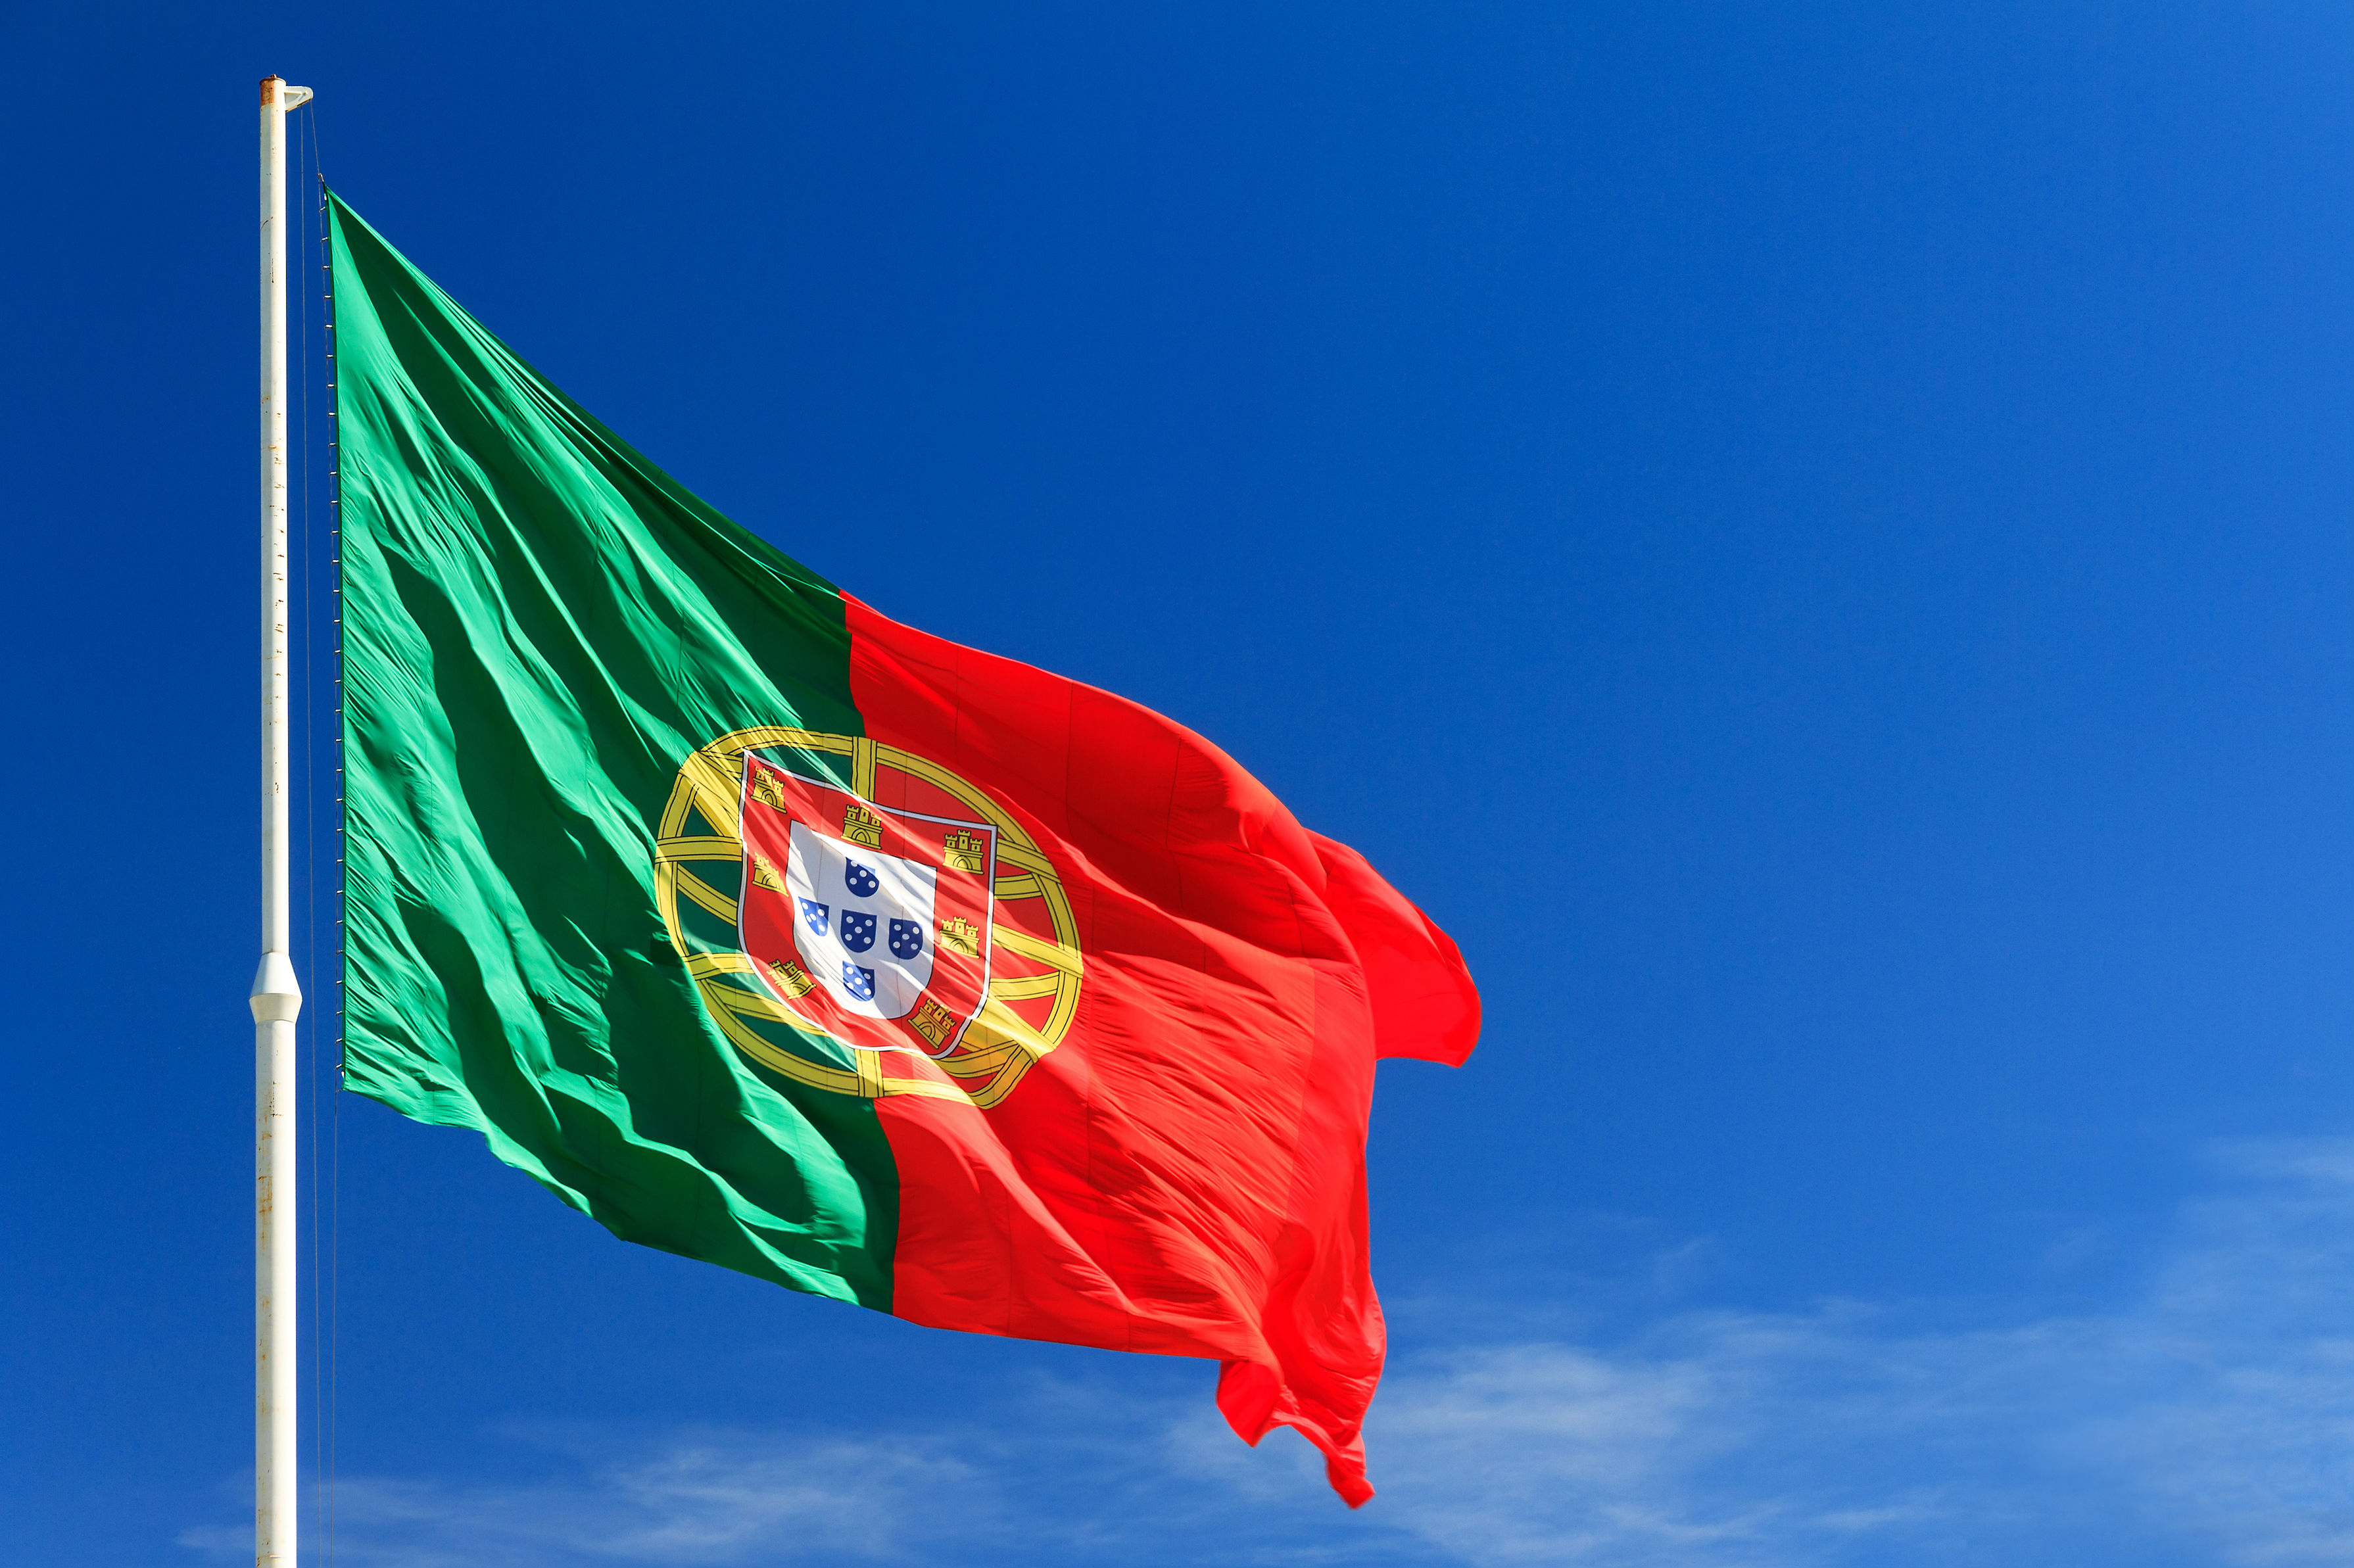 Portugal creates tourism hygiene accreditation to help Covid-19 recovery